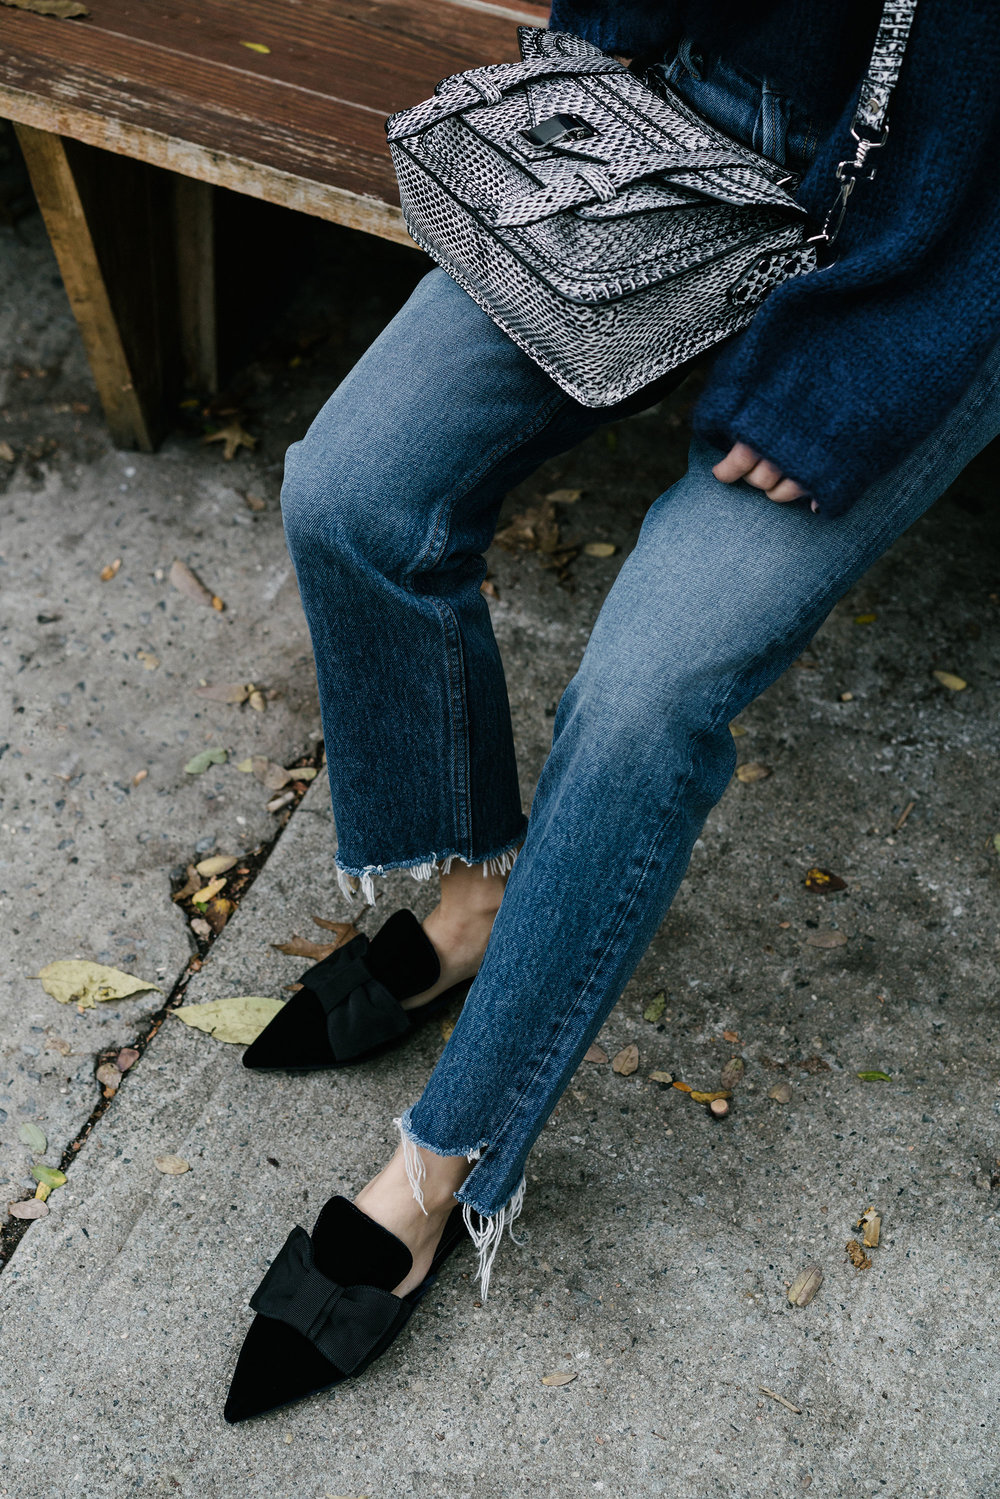 Tabula Rasa  Sweater,  GRLFRND Denim , Prada Shoes,  Proenza Schouler Bag